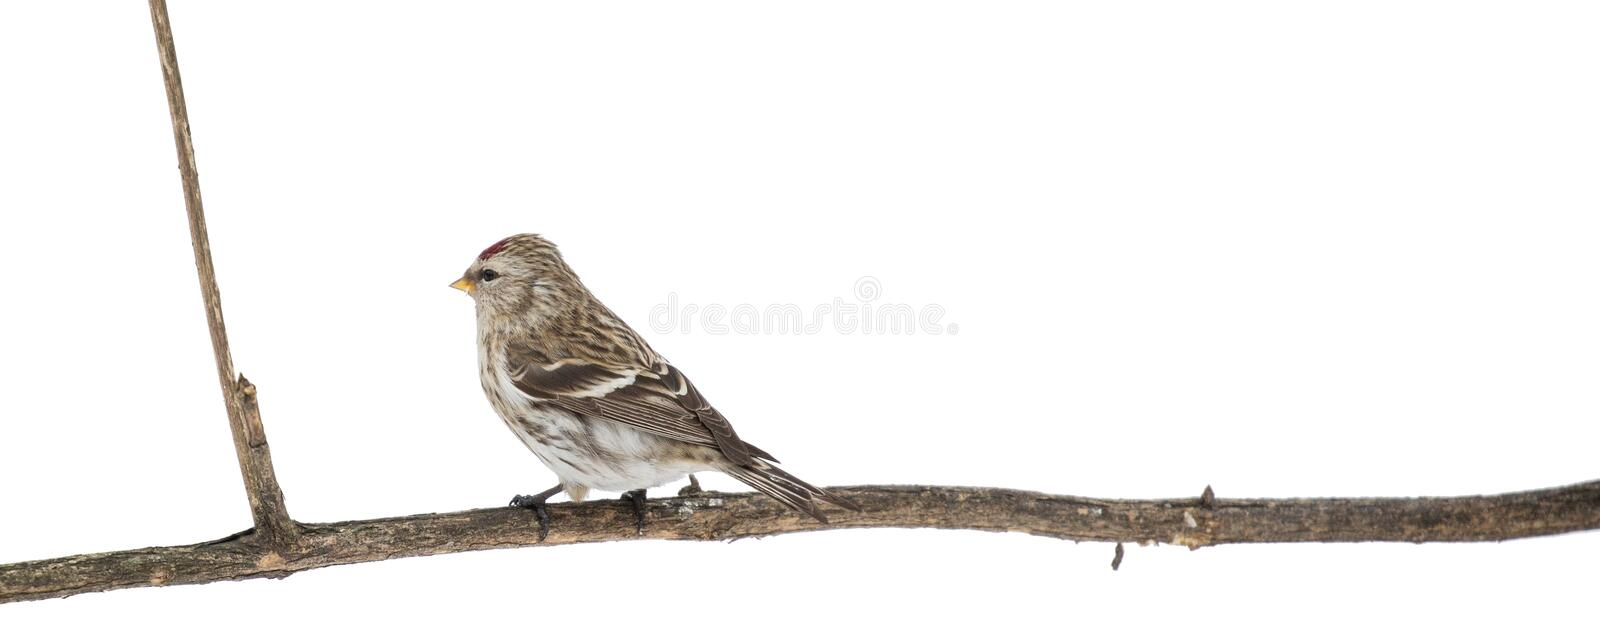 Isolated common redpoll on long dry branch stock image